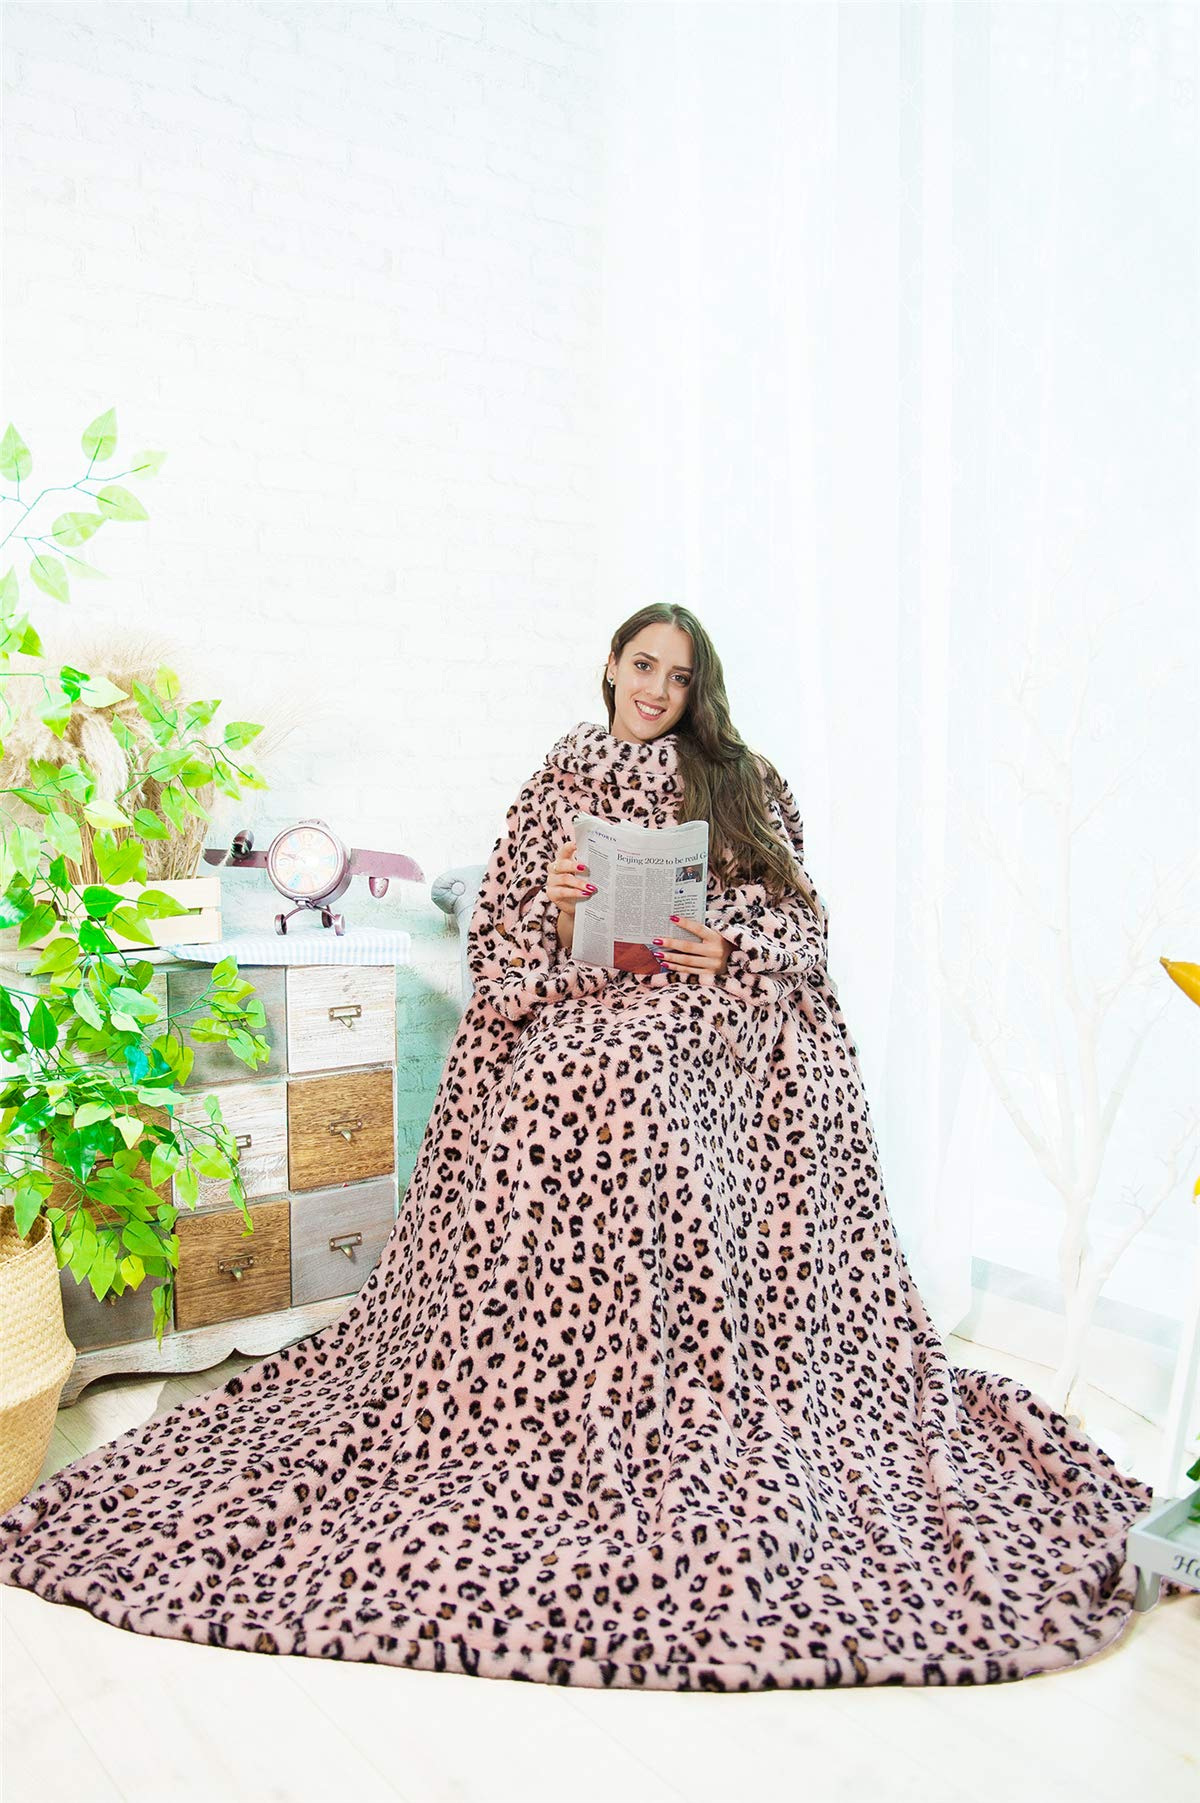 Alcea Rosea TV Blanket Shu Velveteen Soft Plush Big Size Blanket Animal Print with Sleeves and Back feet Pocket,Cozy,Warm,Functional,Throw Robe for Adult,Women Men-79'' x 60'' (Pink Leopard)